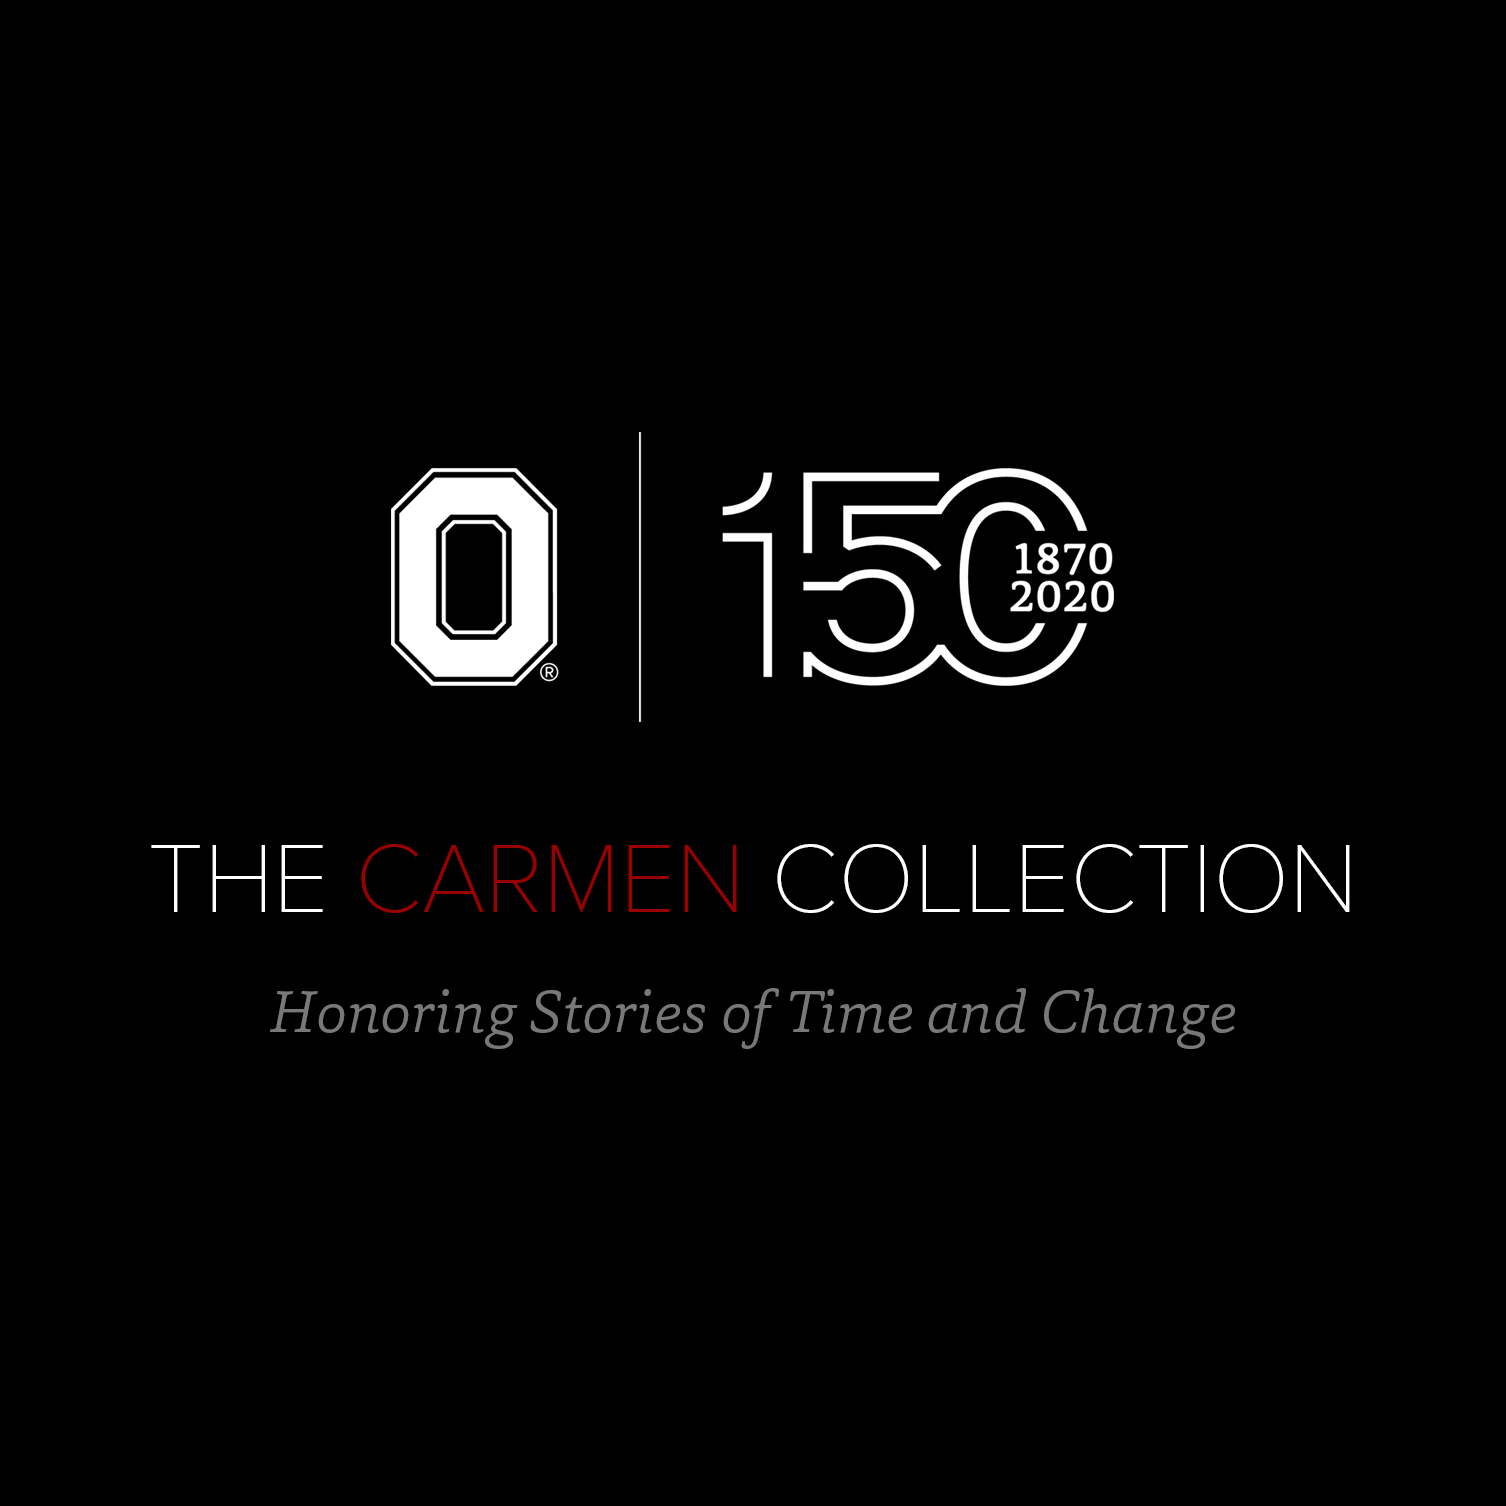 The Carmen Collection: Honoring Stories of Time and Change